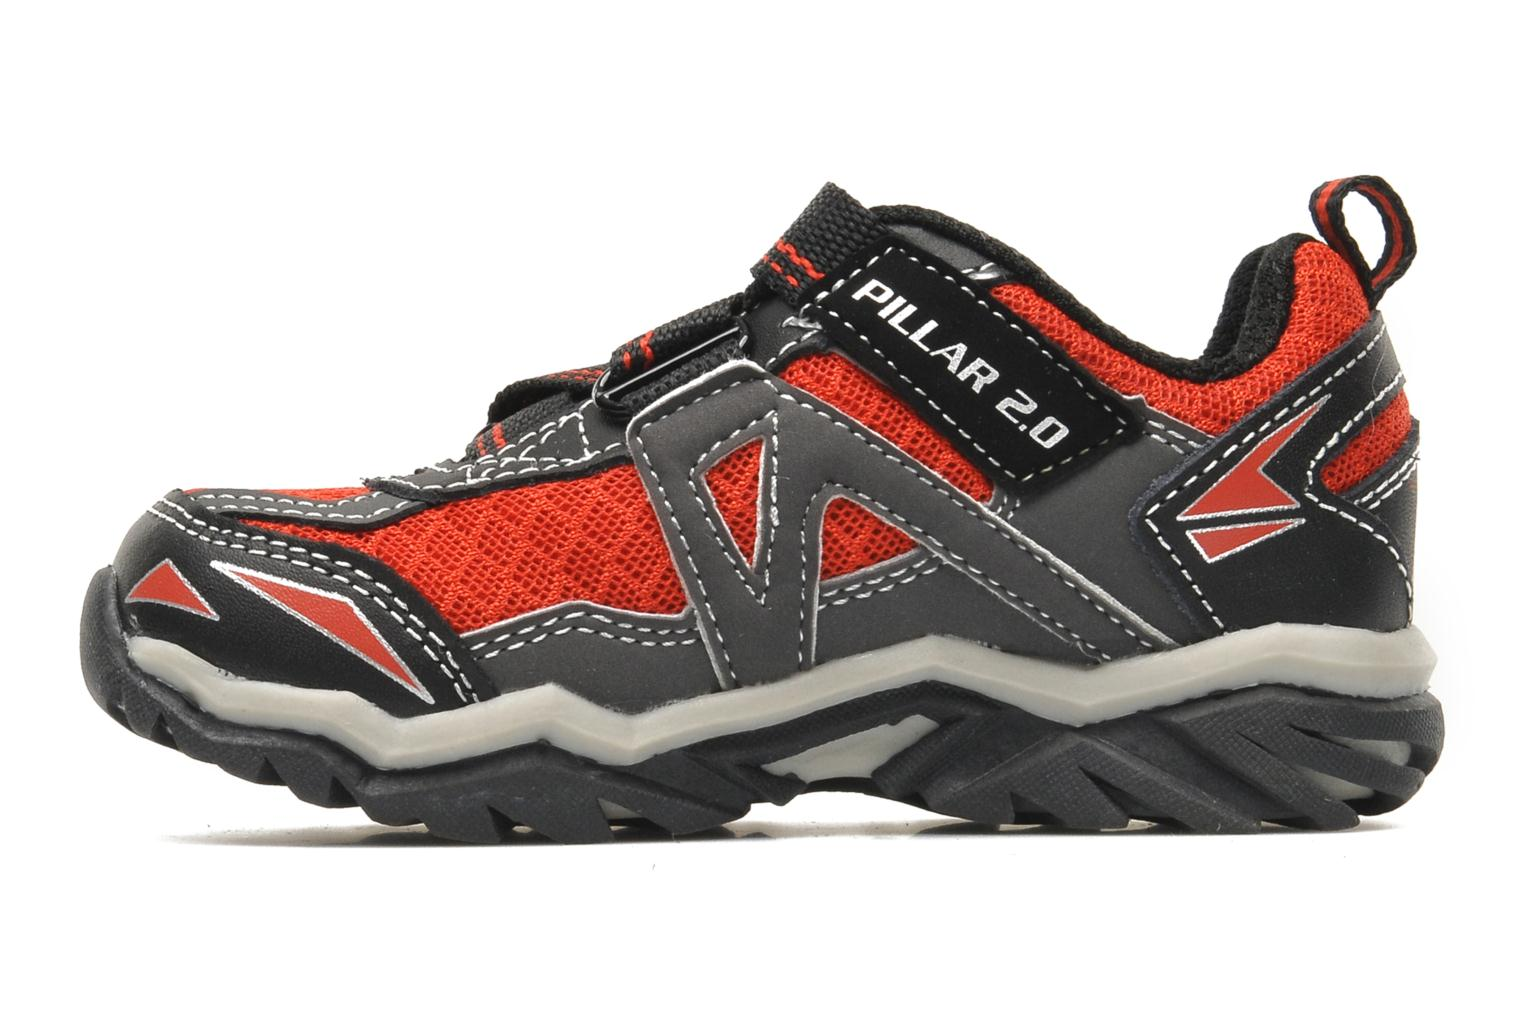 Pillar 2.0 / Hawk Black grey red